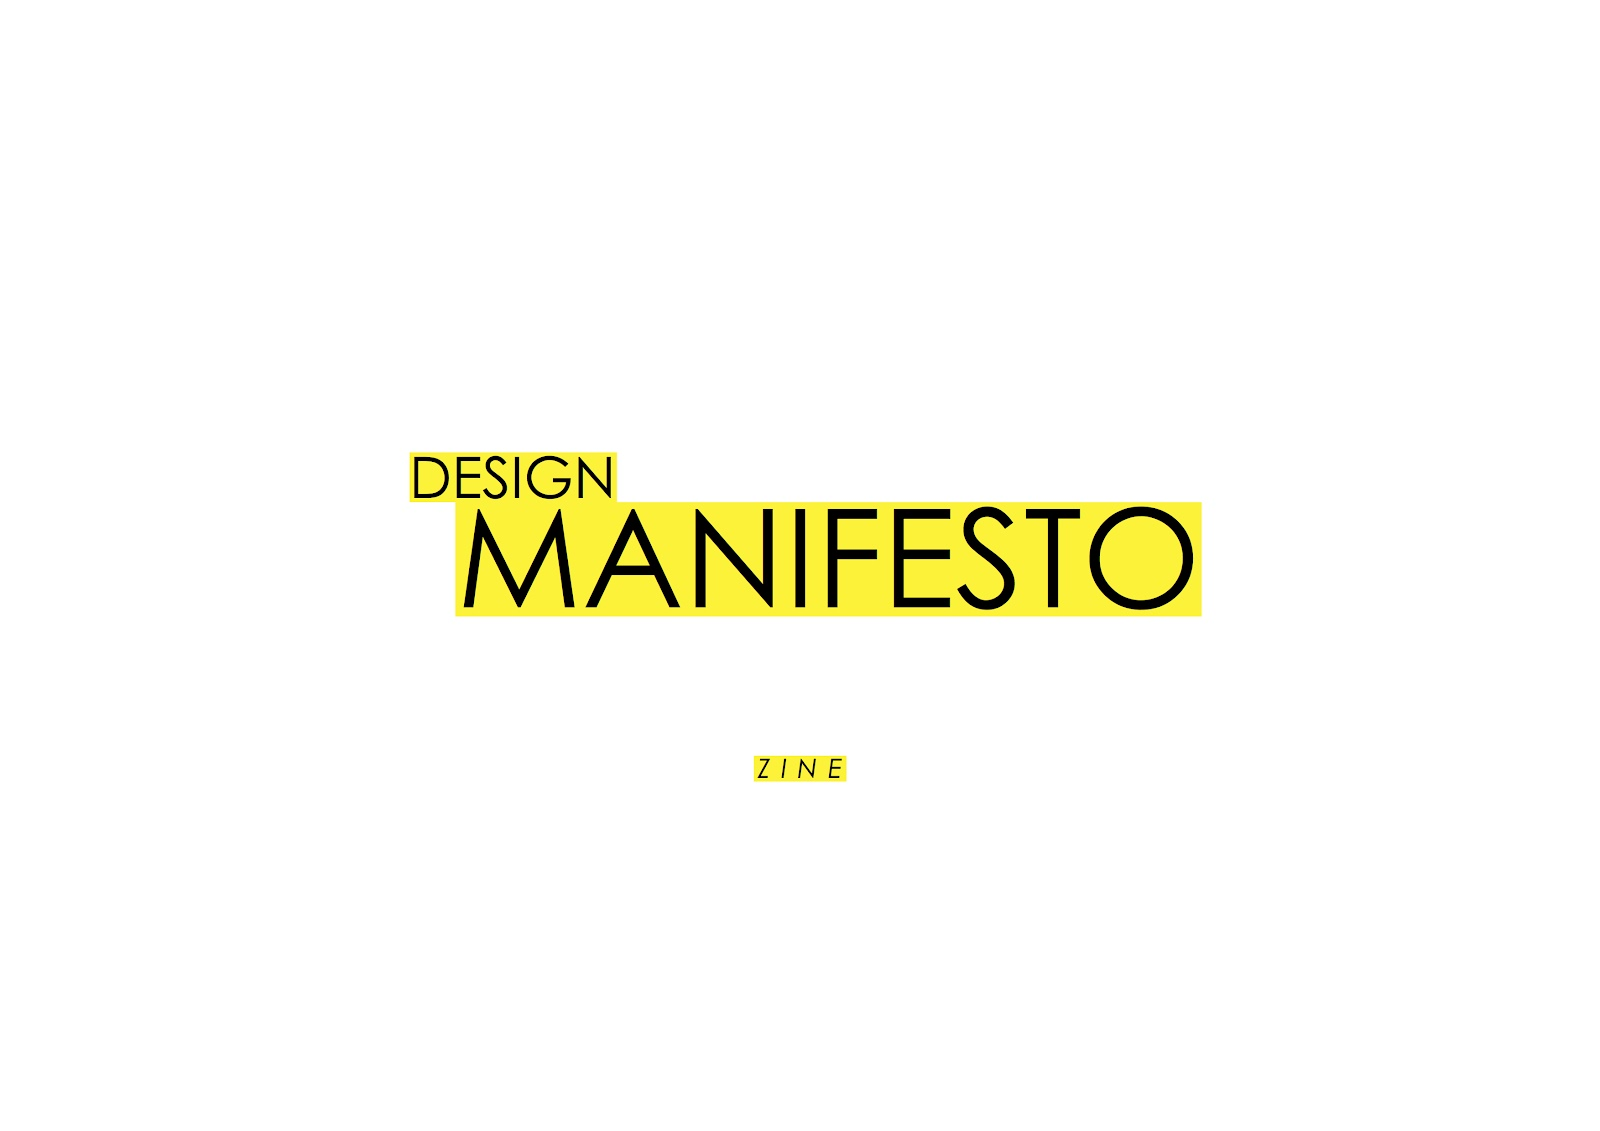 manifestos in design 6 months ago i started my research for the design manifesto the goal was to craft a list of product design principles there is so much knowledge out there and it is.